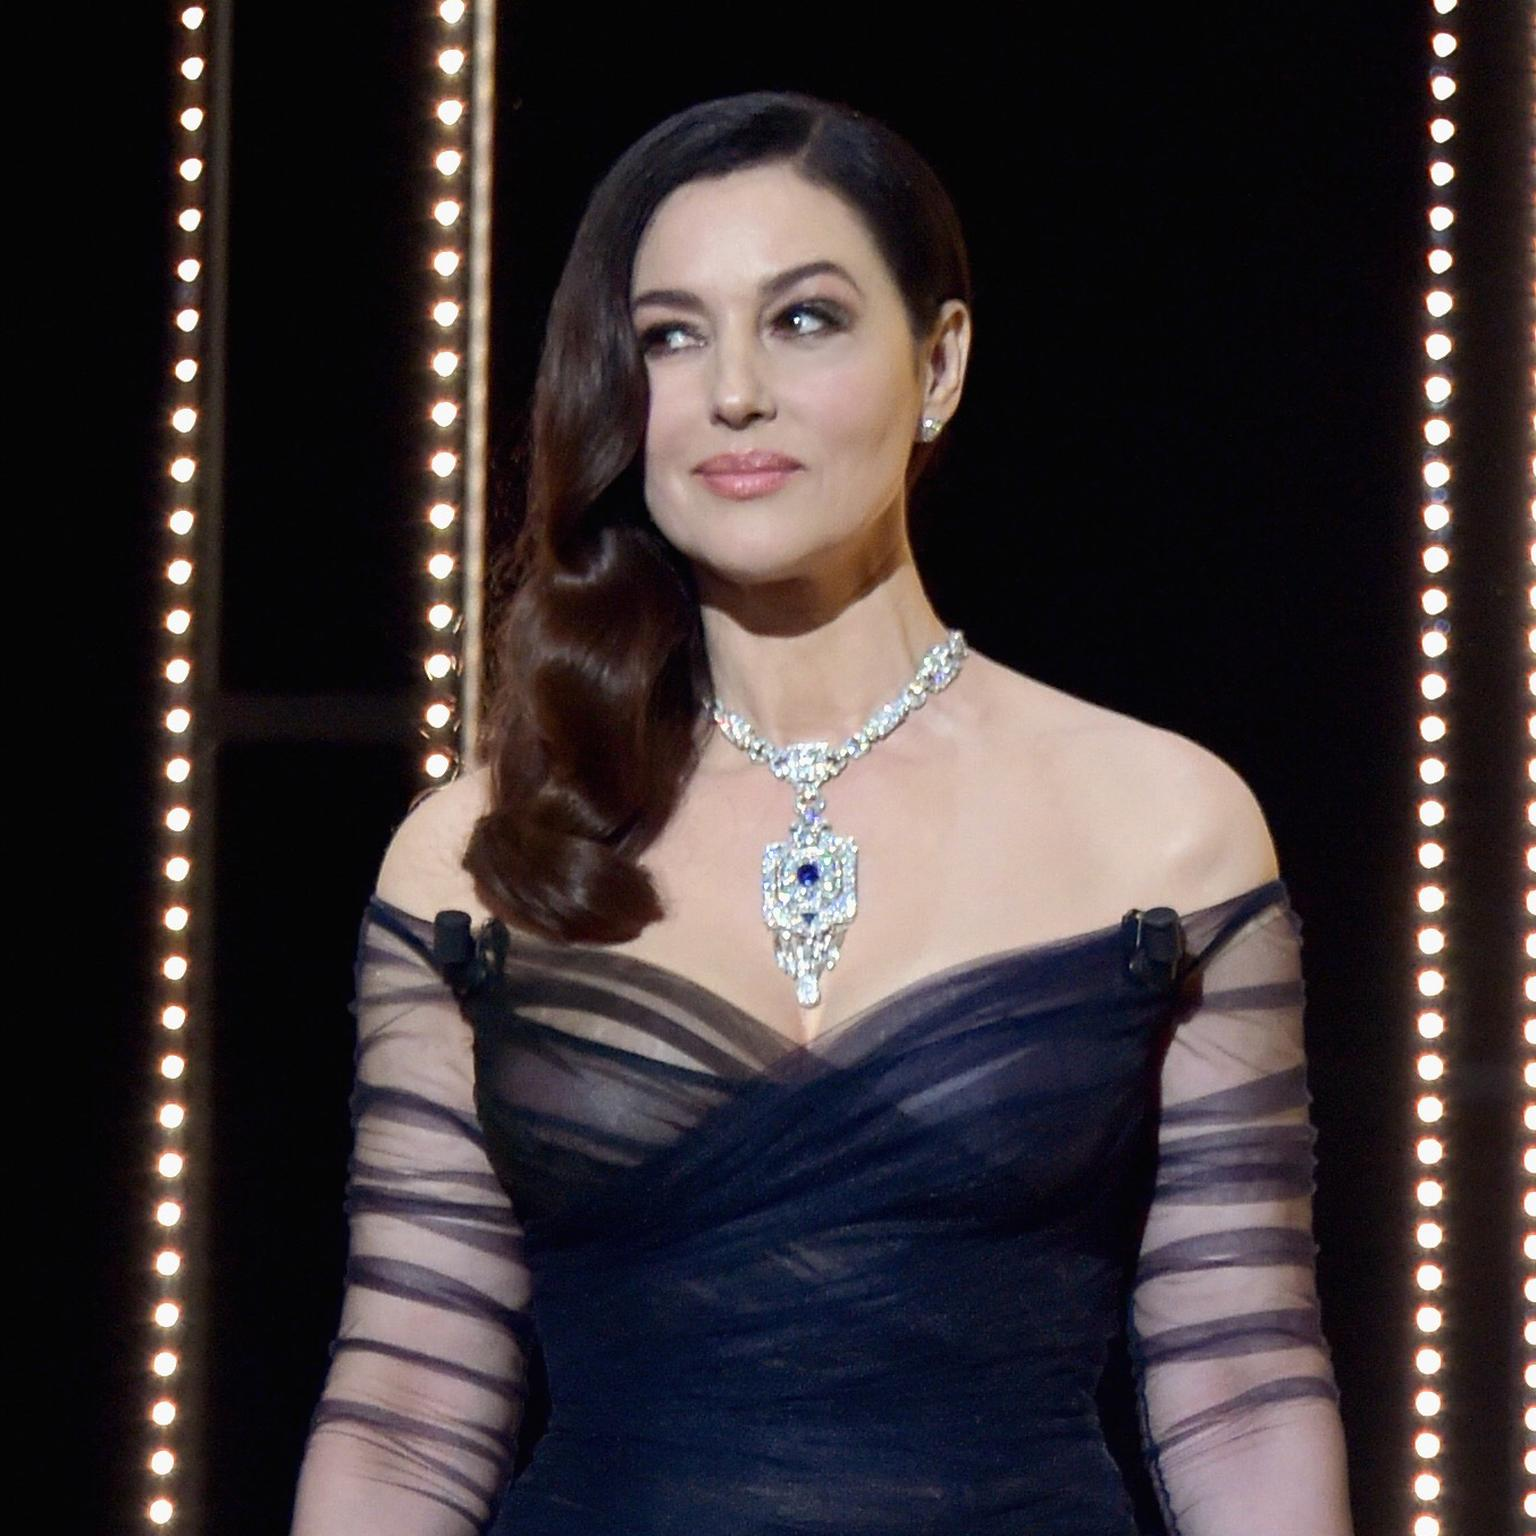 Monica Bellucci Cannes 2017 in Cartier necklace